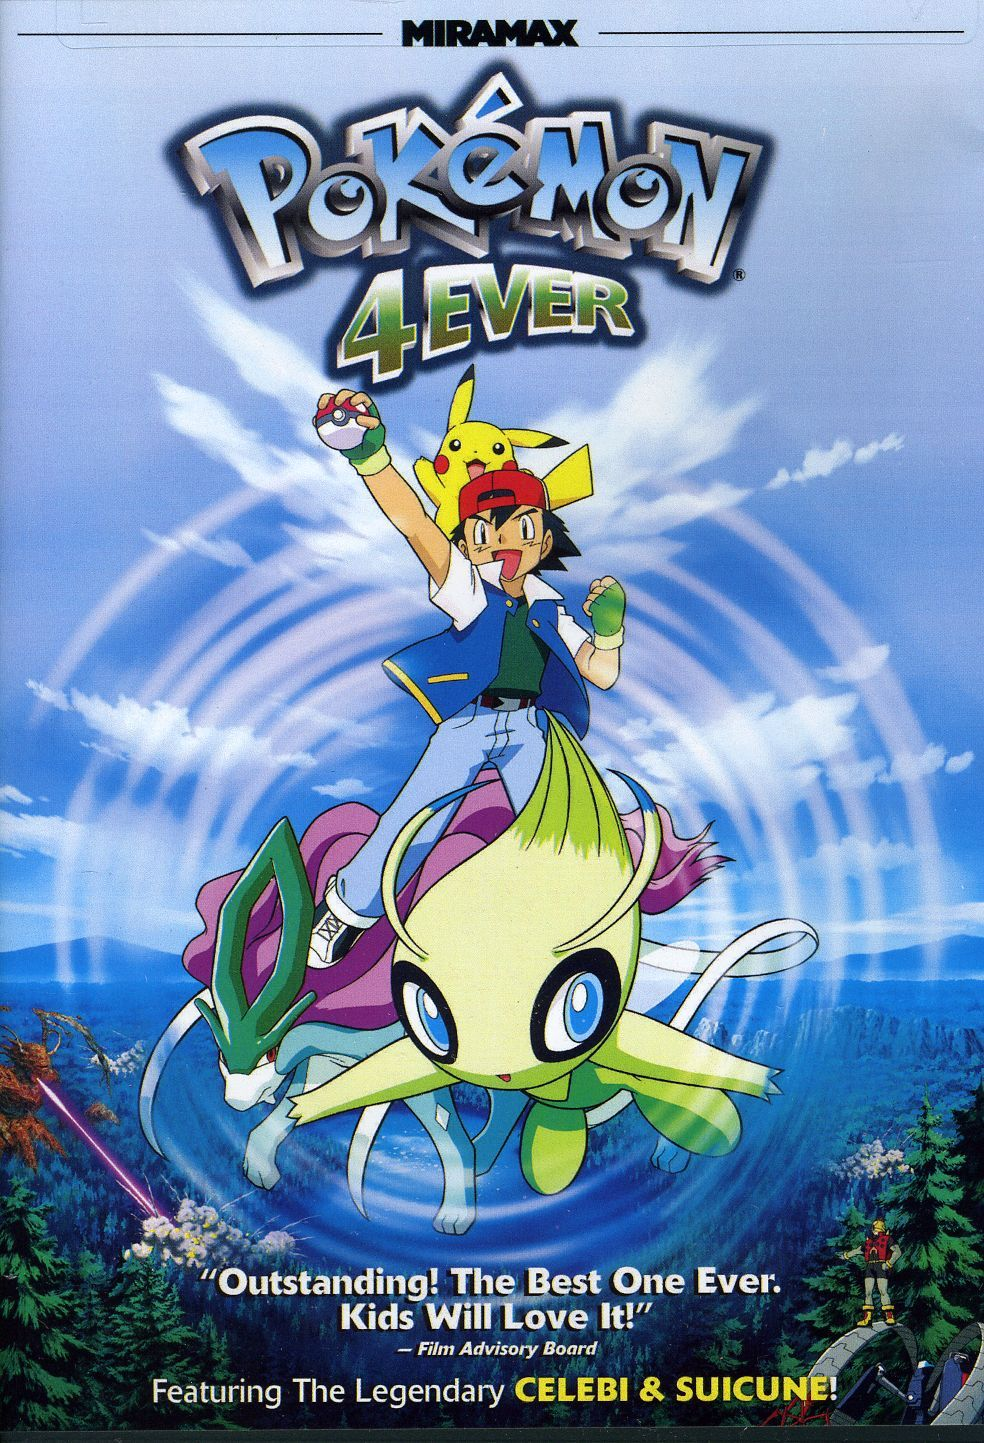 Pokemon 4Ever Celebi Voice of the Forest Pokemon